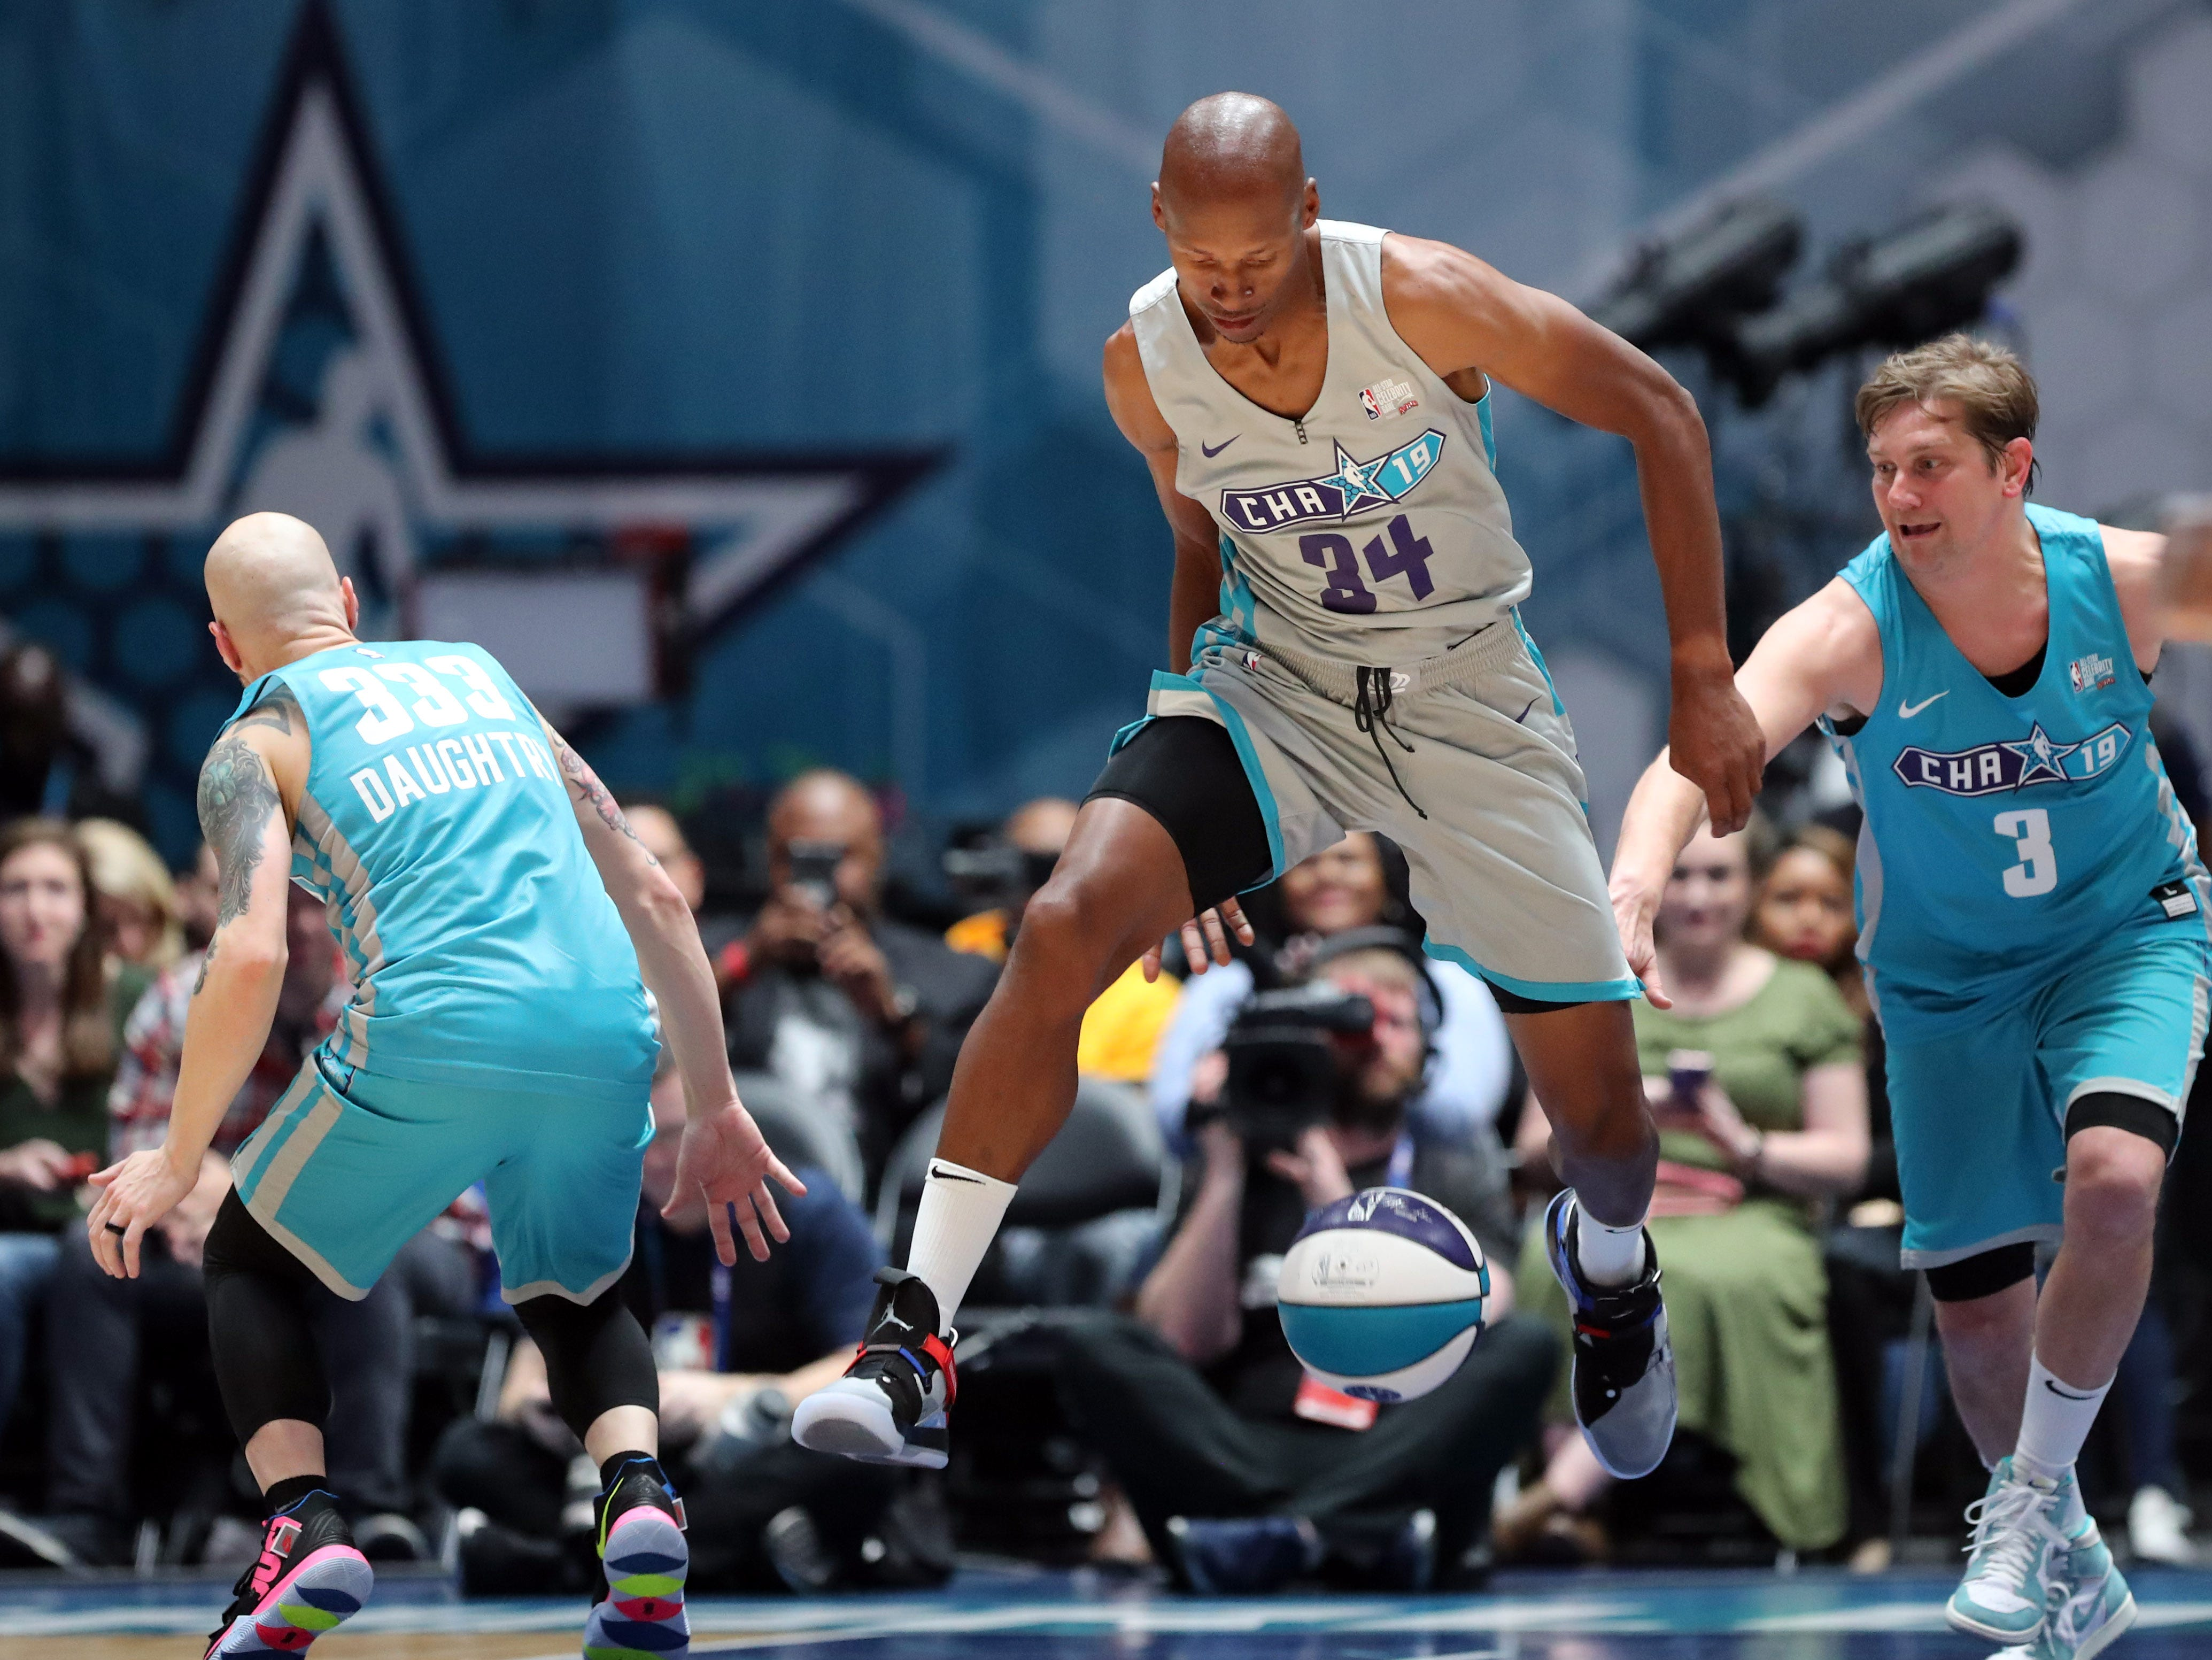 Ray Allen brings the ball up the court while defended by Bo Rinehart (3) and Chris Daughtry during the Celebrity Game.